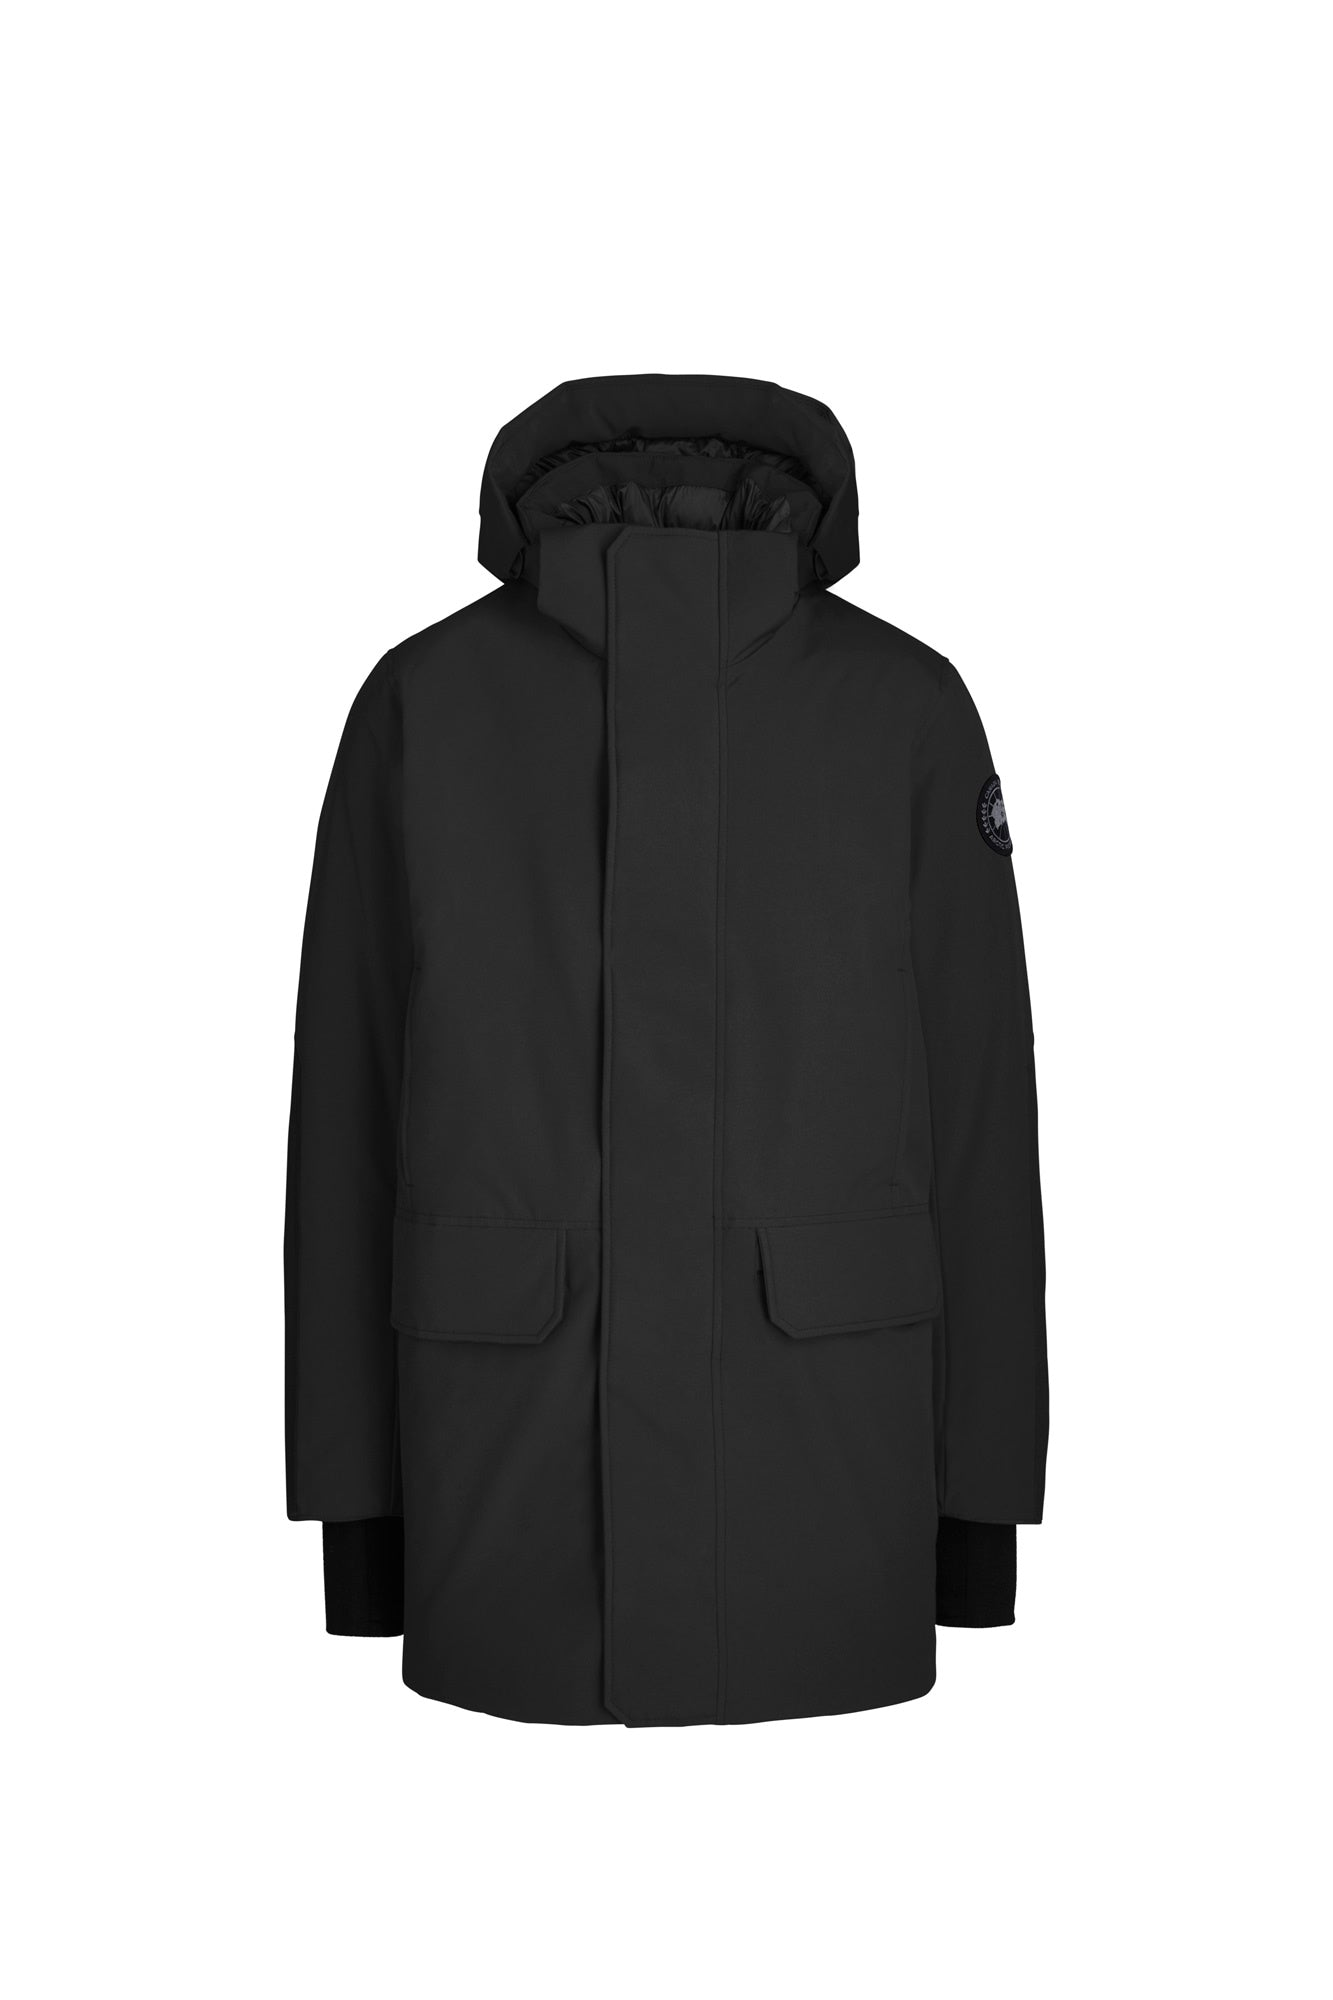 Canada Goose Men's BROCKTON Parka Black Label - Black